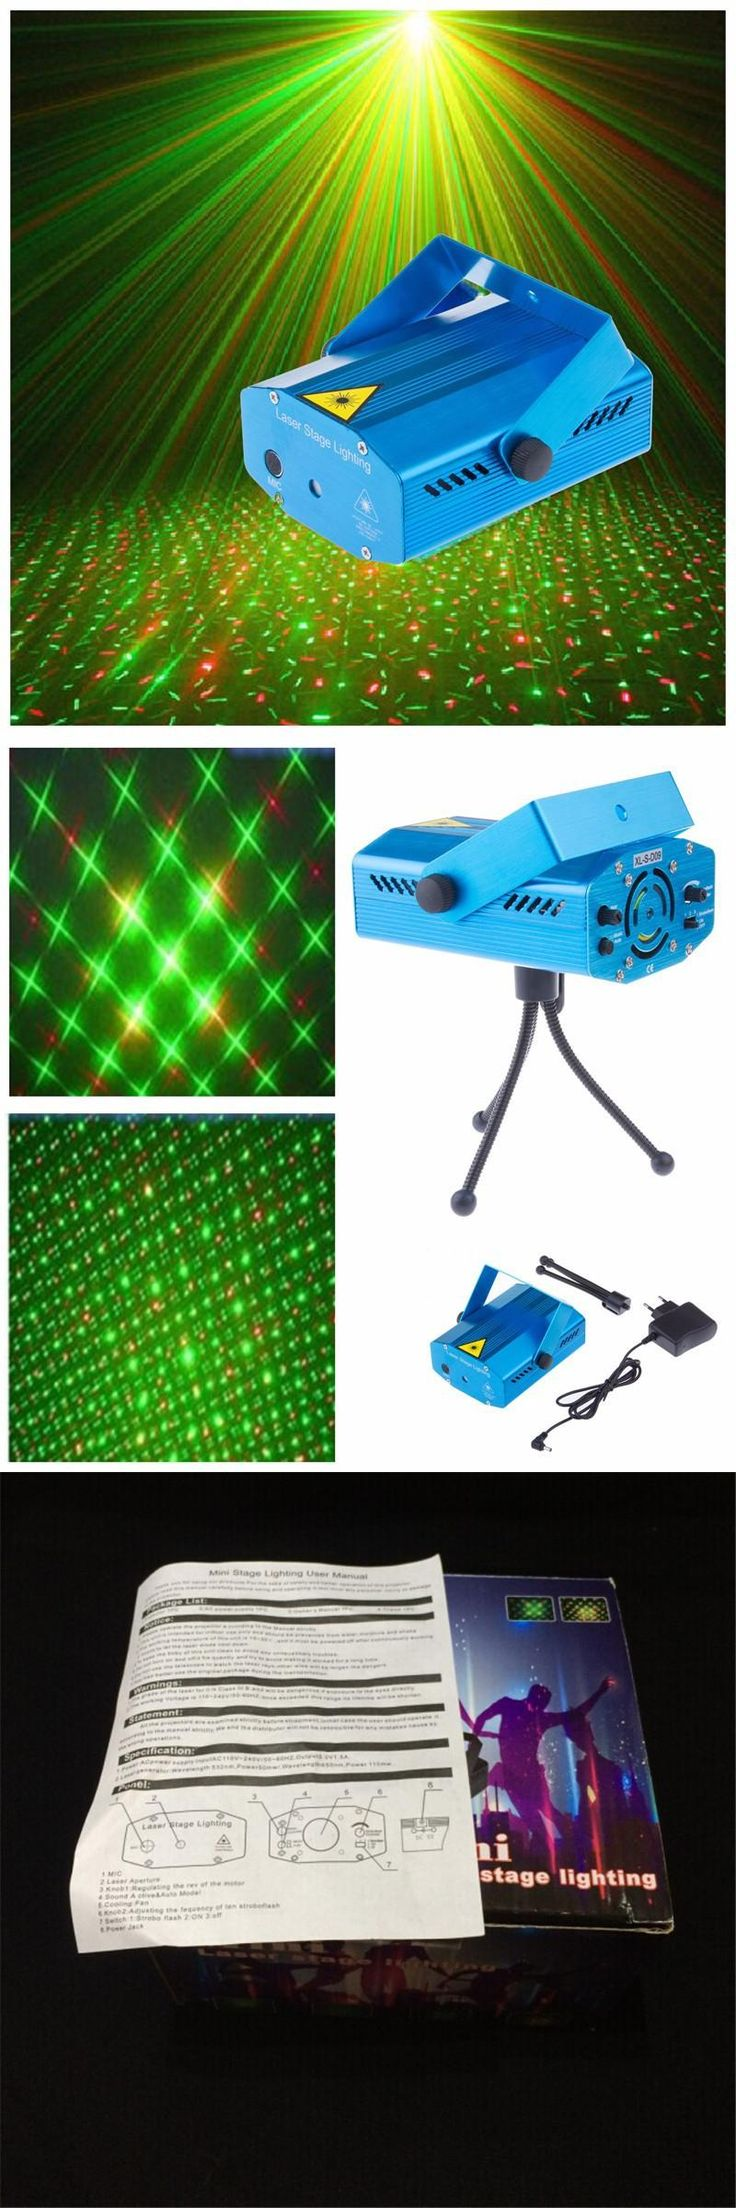 [Visit to Buy] RG Mini Laser Projector DMX LED Stage Lighting Professional DJ Equipment Strobe Dance Disco Light Home Party Show Lights #Advertisement